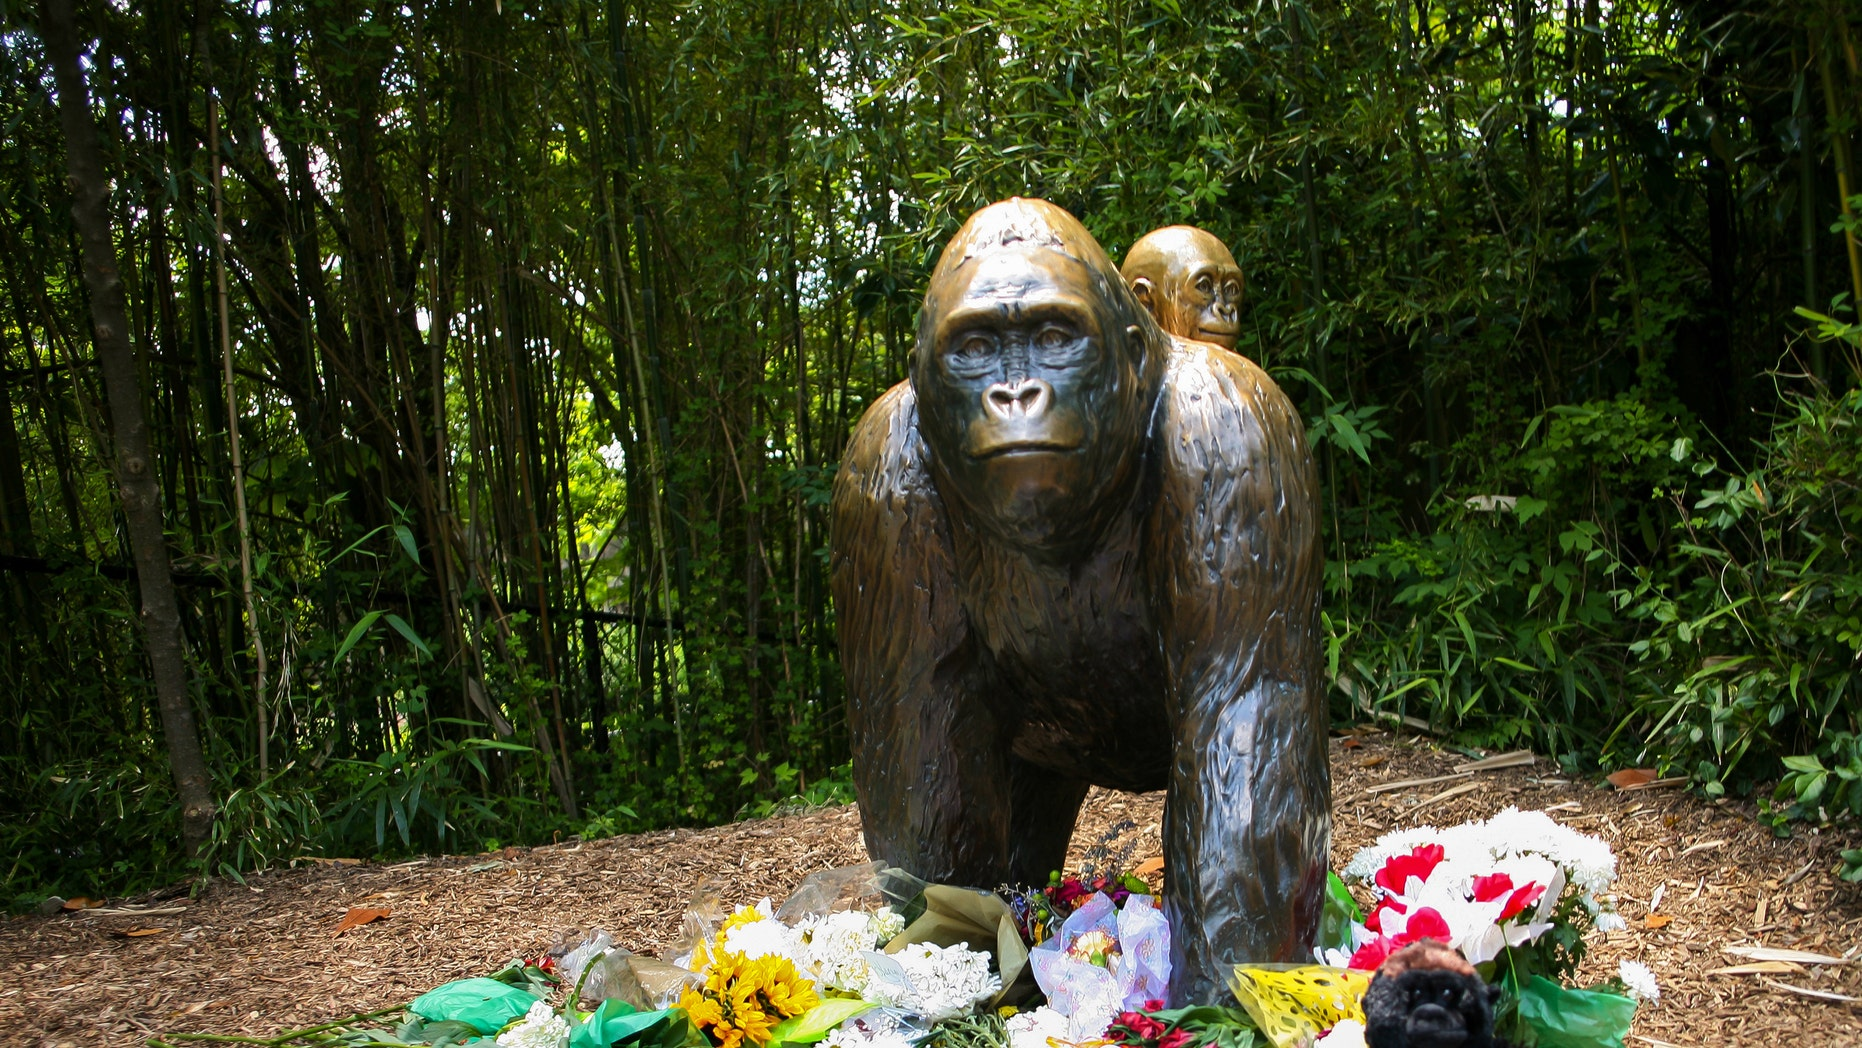 File photo - Flowers lay around a bronze statue of a gorilla and her baby outside the Cincinnati Zoo's Gorilla World exhibit, two days after a boy tumbled into its moat and officials were forced to kill Harambe, a Western lowland gorilla, in Cincinnati, Ohio, U.S. May 30, 2016. (REUTERS/William Philpot)